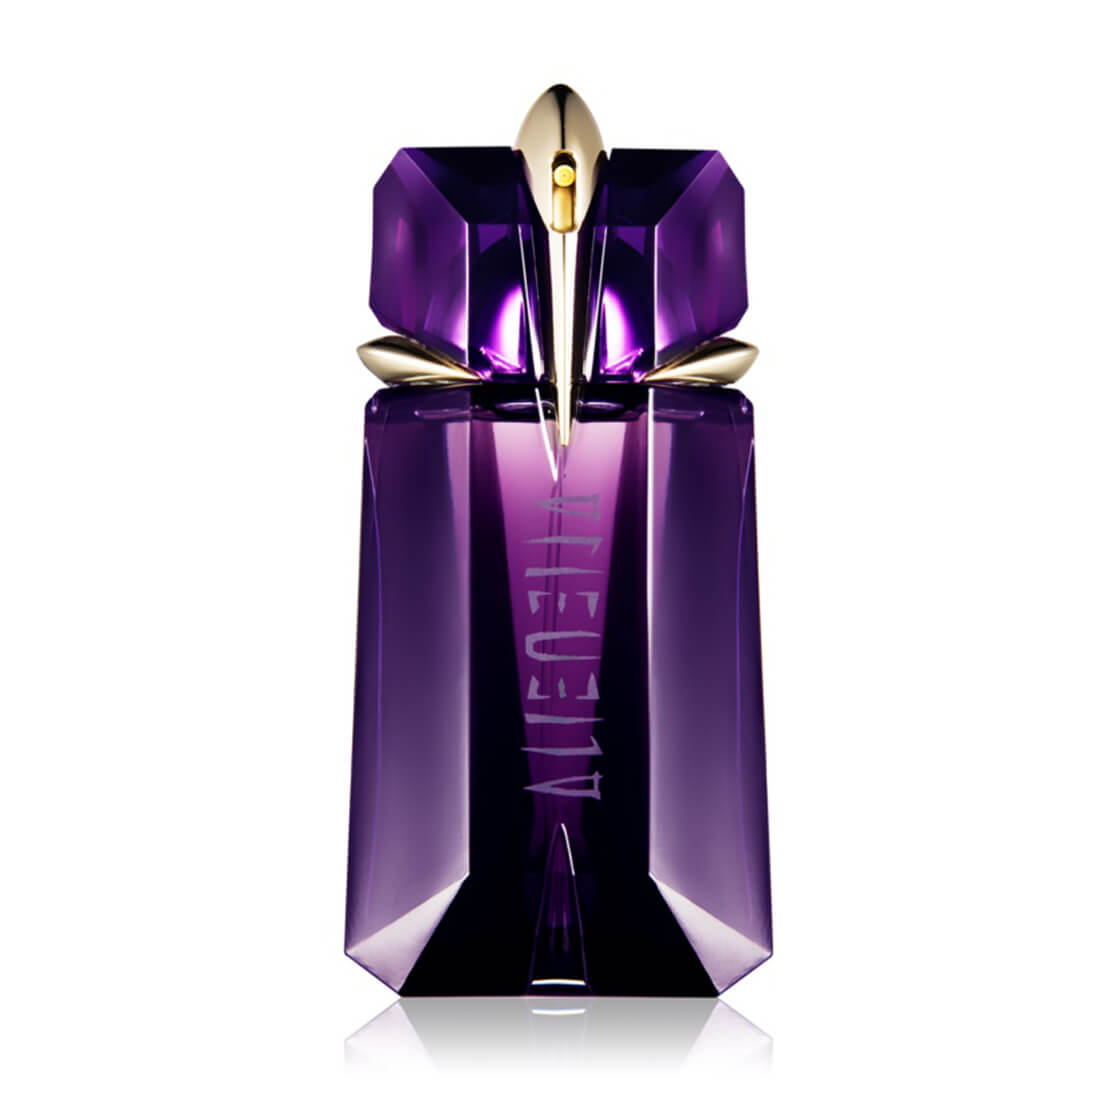 Thierry Mugler Alien Eau De Perfume For Women - 60ml